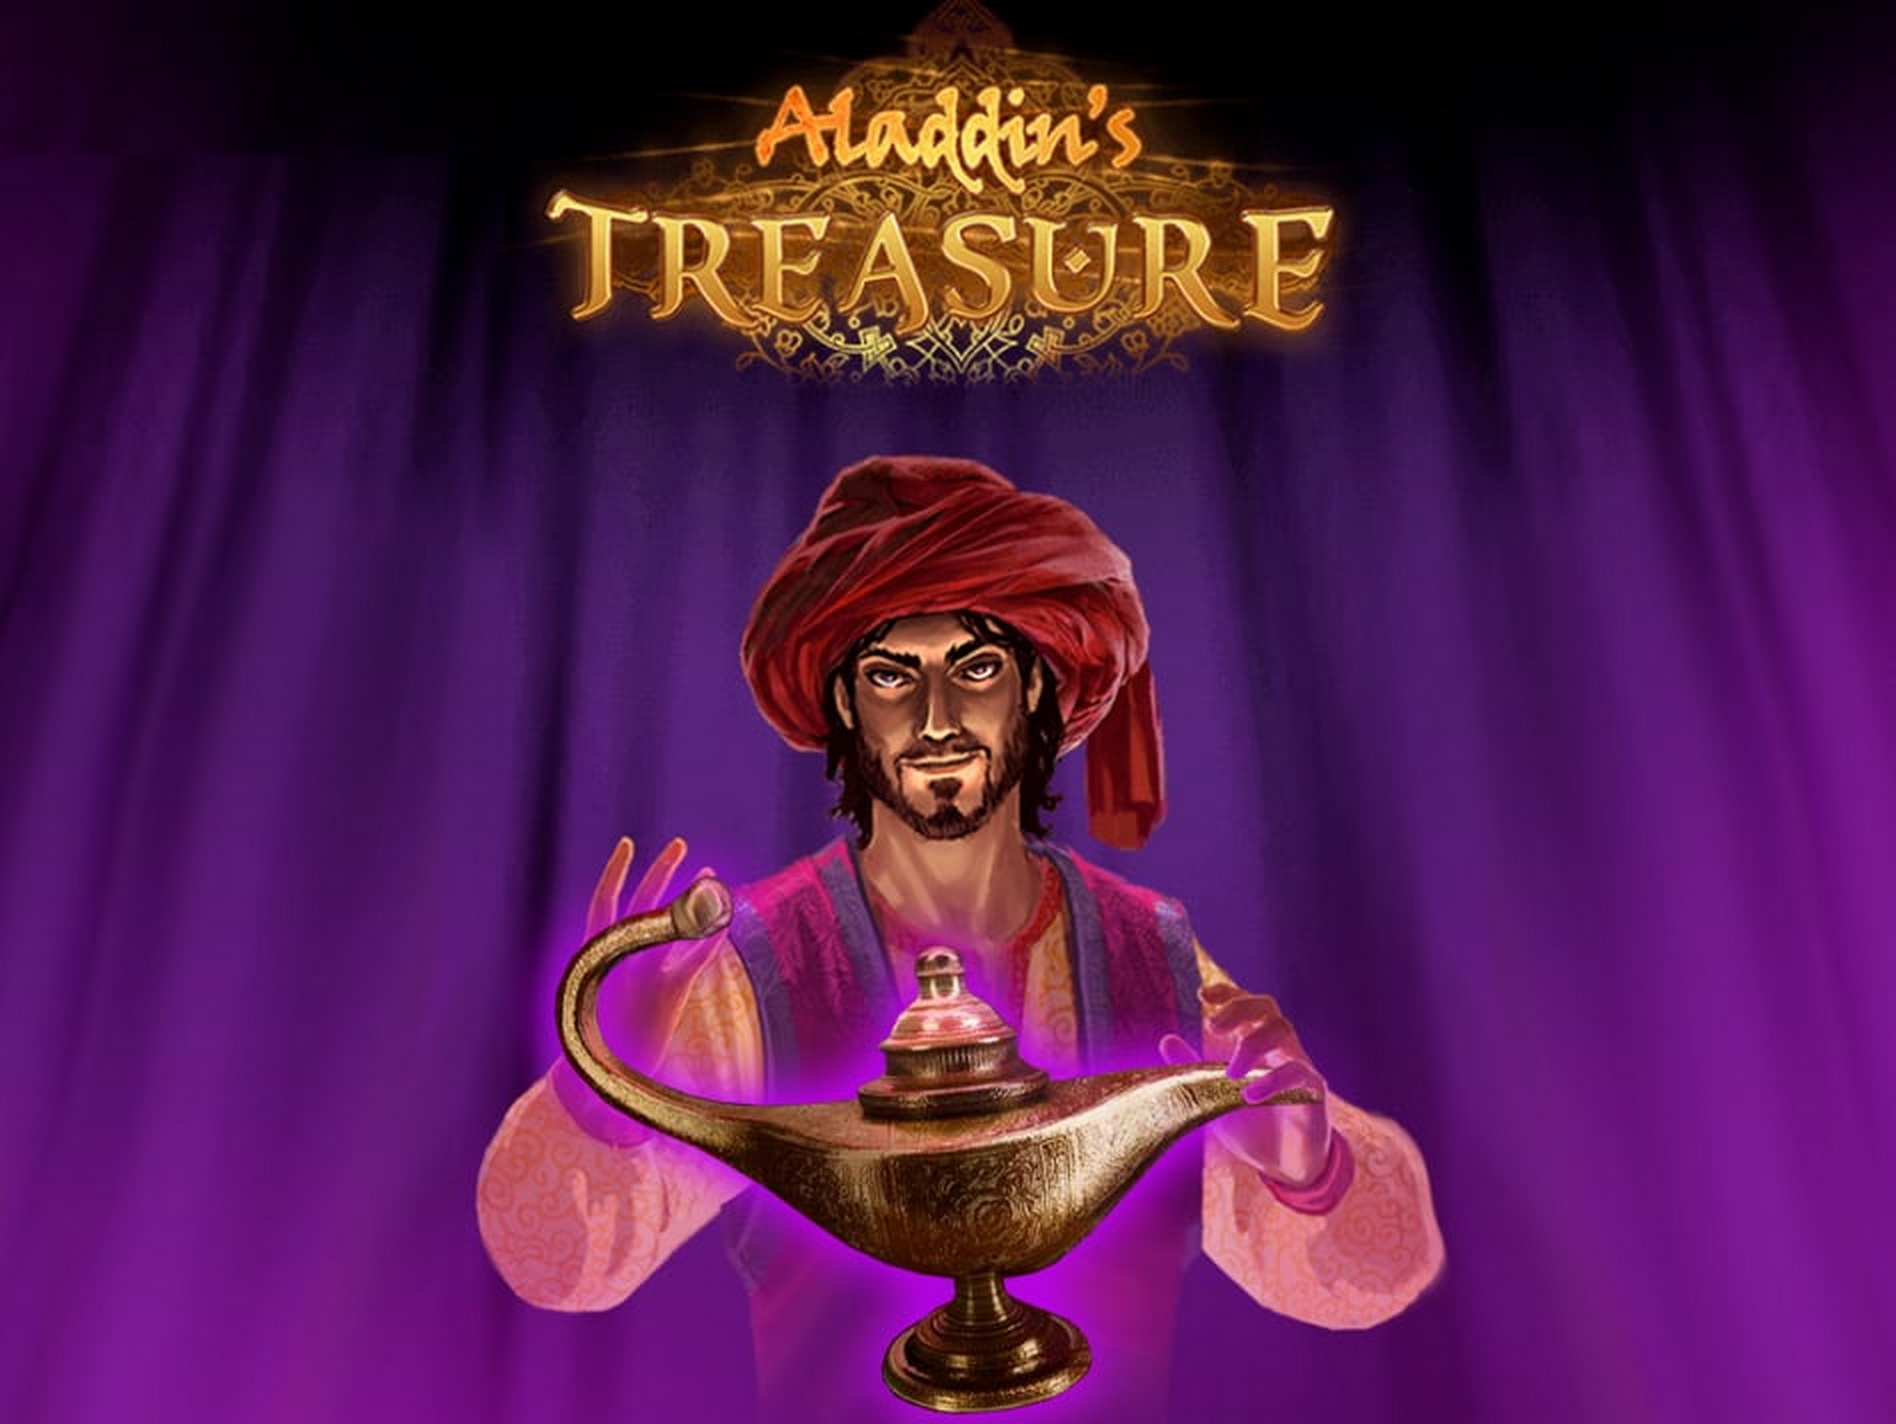 The Aladdin's Treasure Online Slot Demo Game by Pragmatic Play